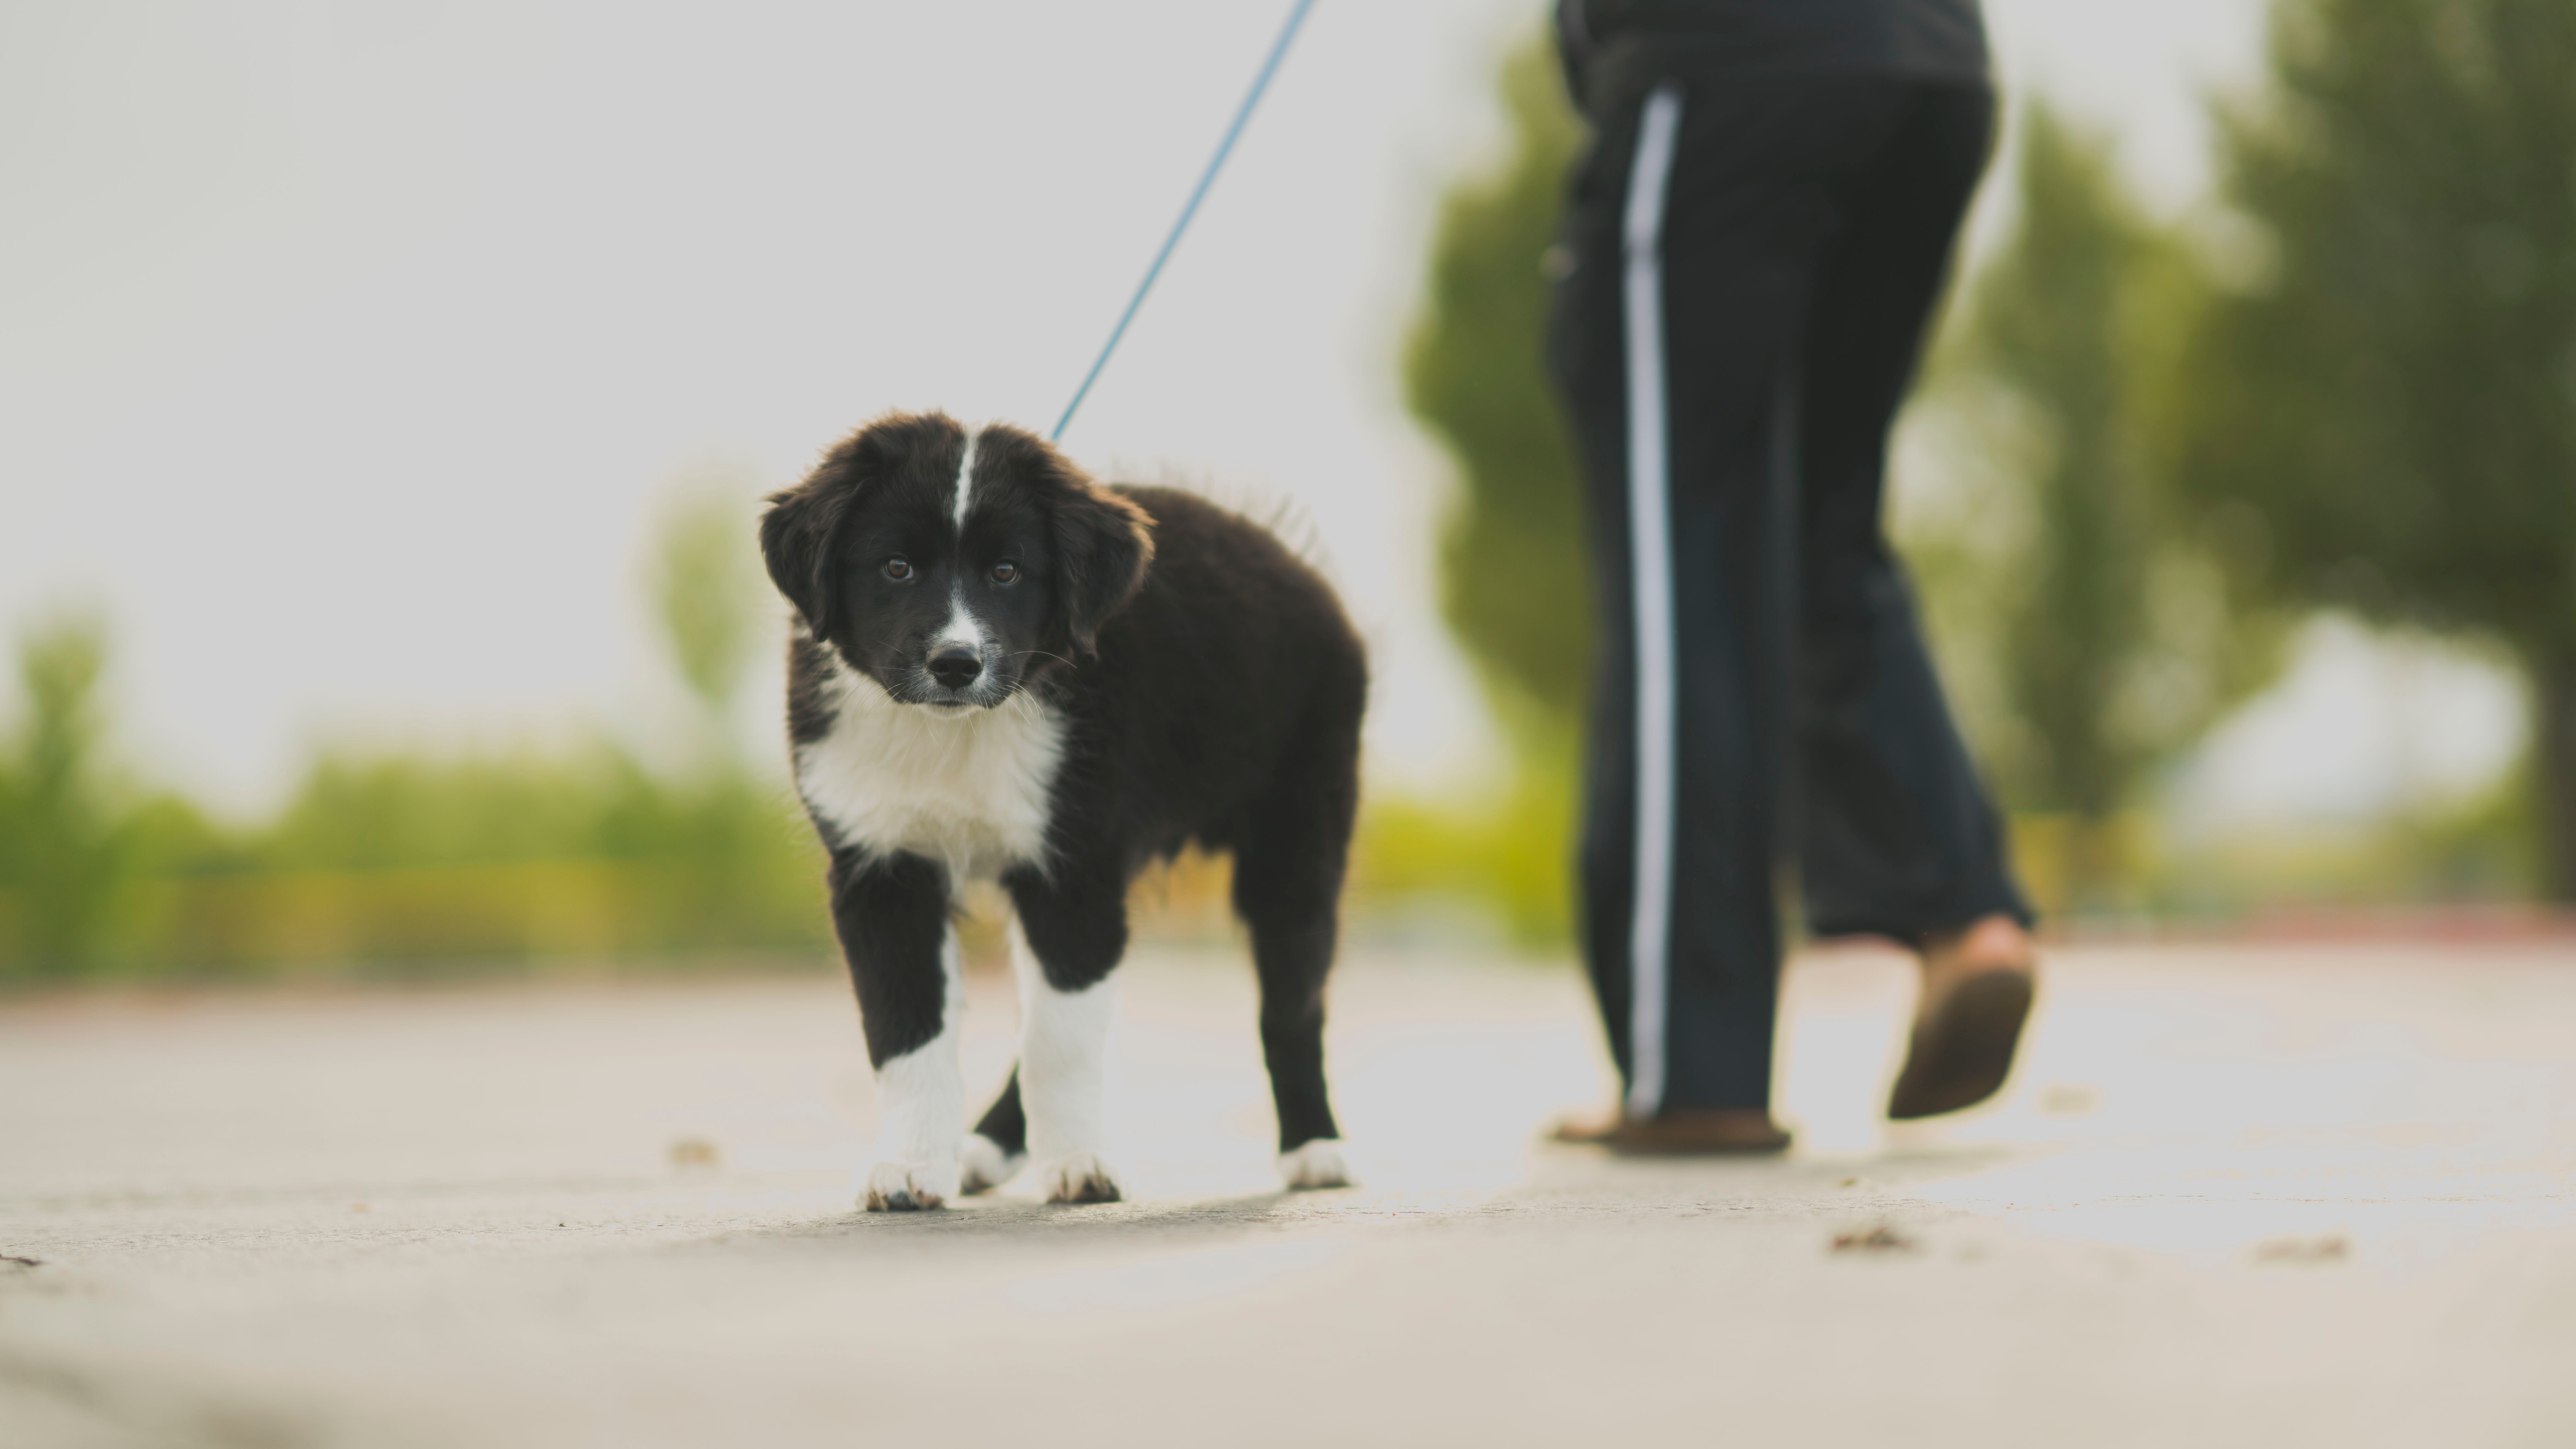 White and black border collie puppy walk beside person in track pants photo